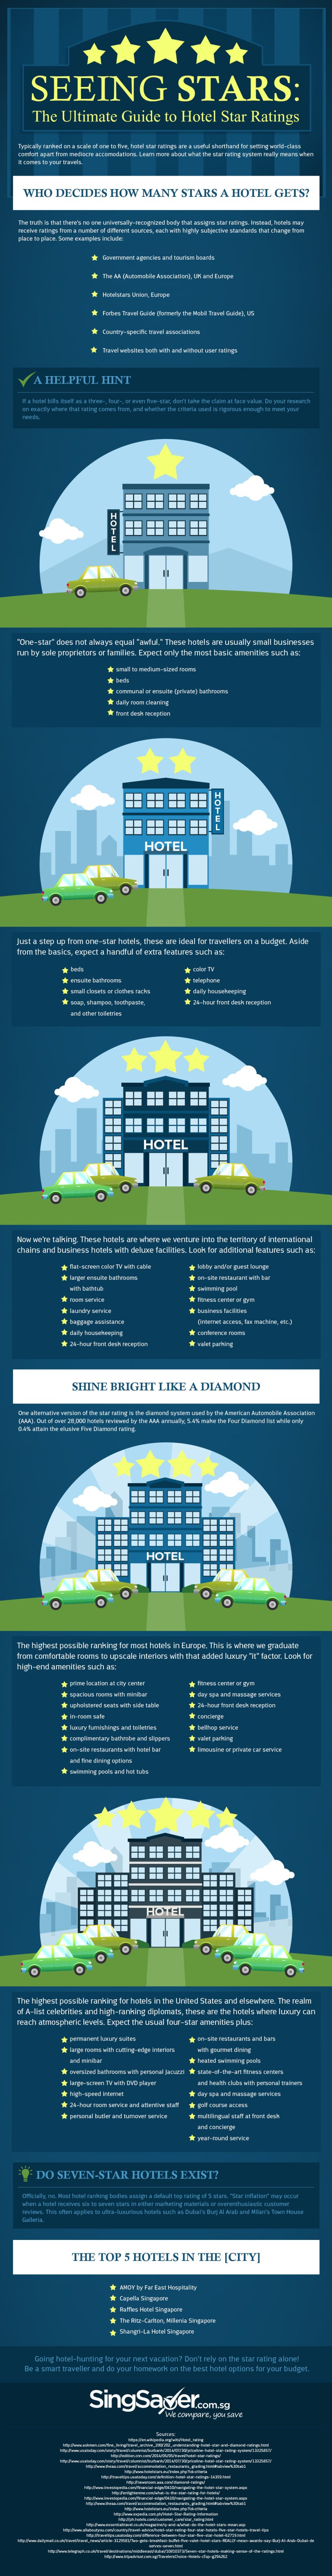 The Ultimate Guide to Hotel Star Ratings by SingSaver.com.sg